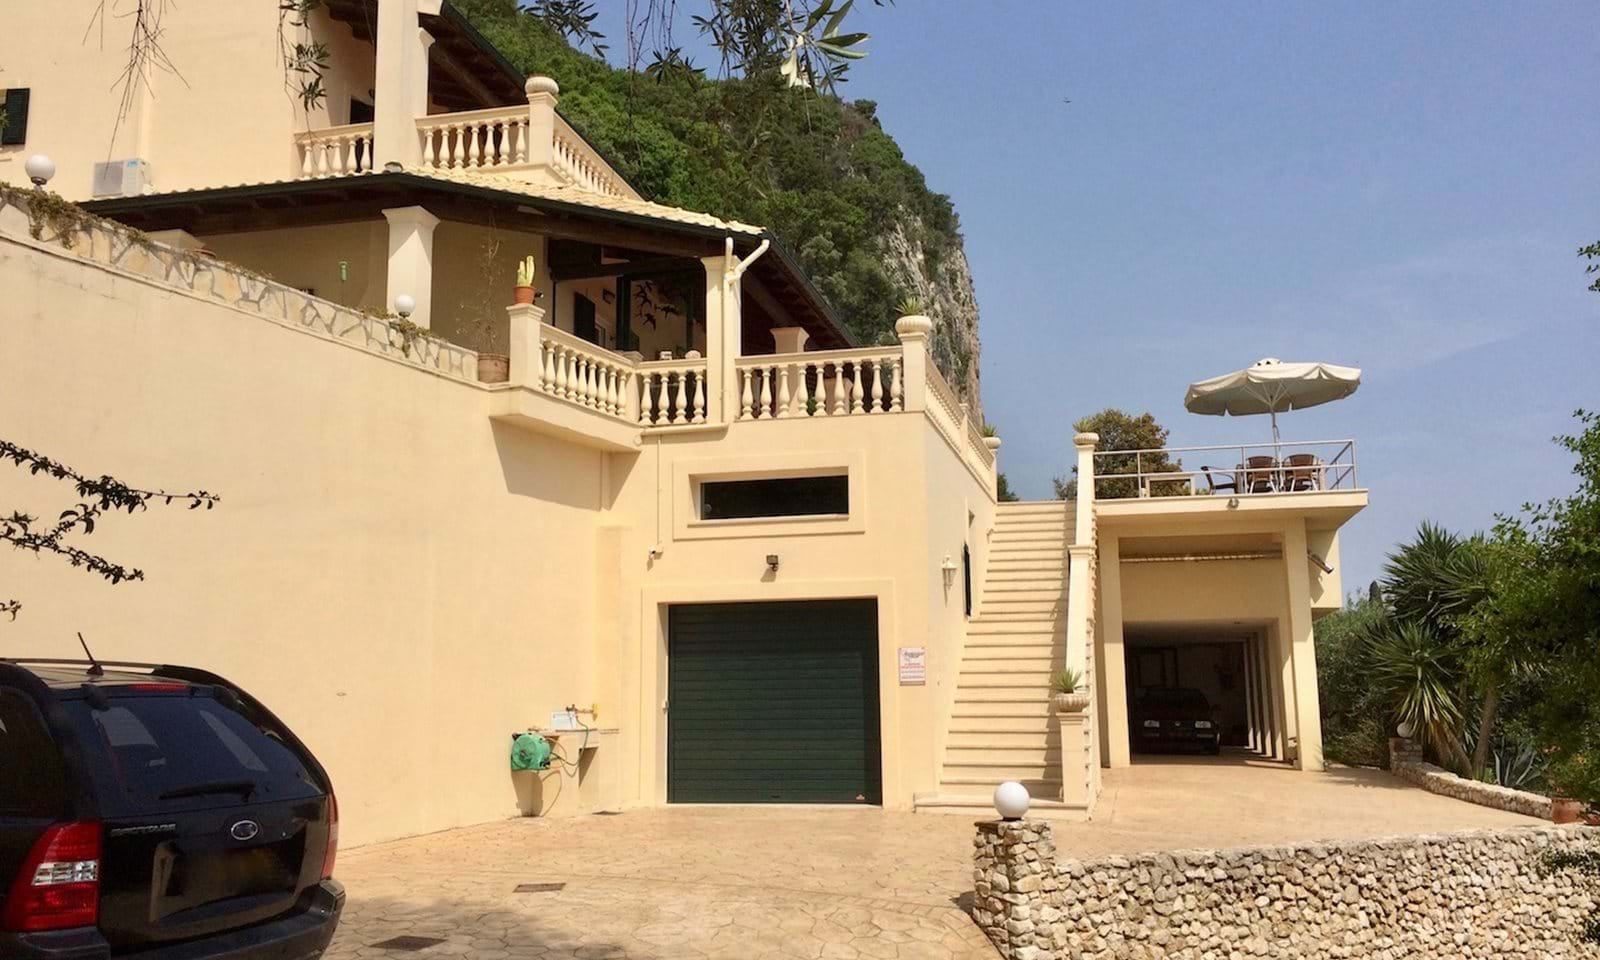 Villa for sel in Corfu, corfuhomefinders, real estate